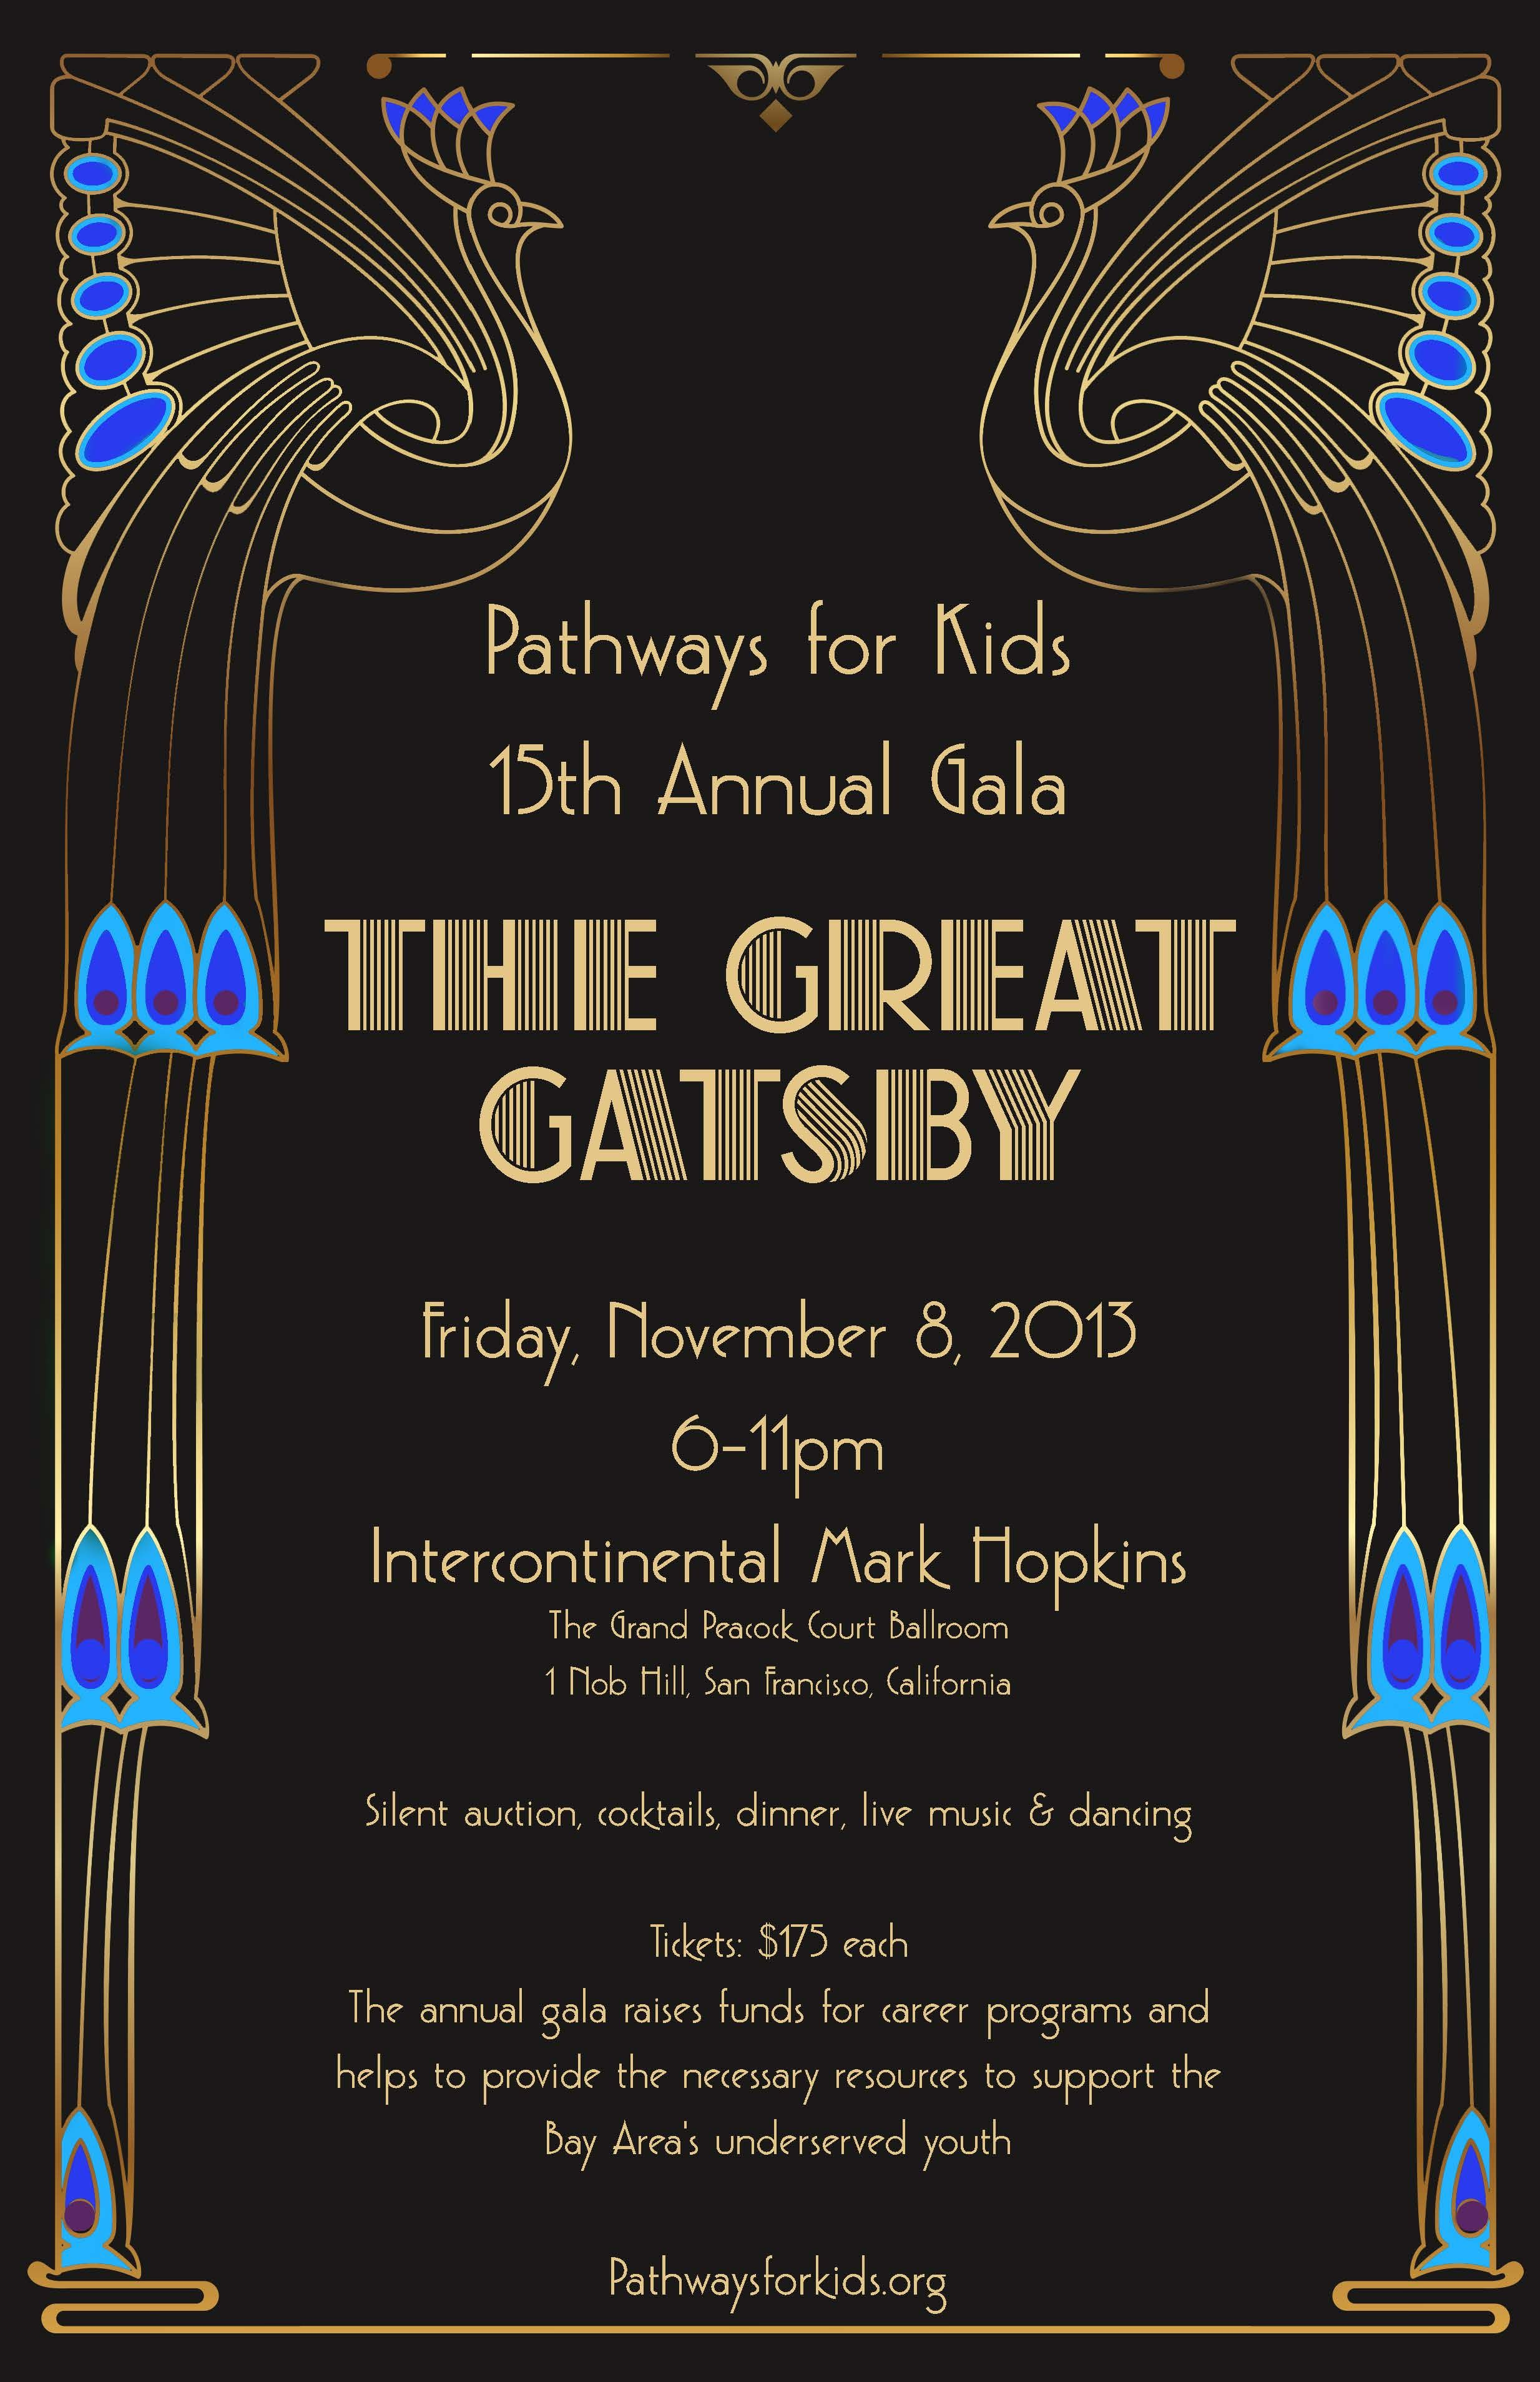 Pathways for Kids 15th Annual Gala \